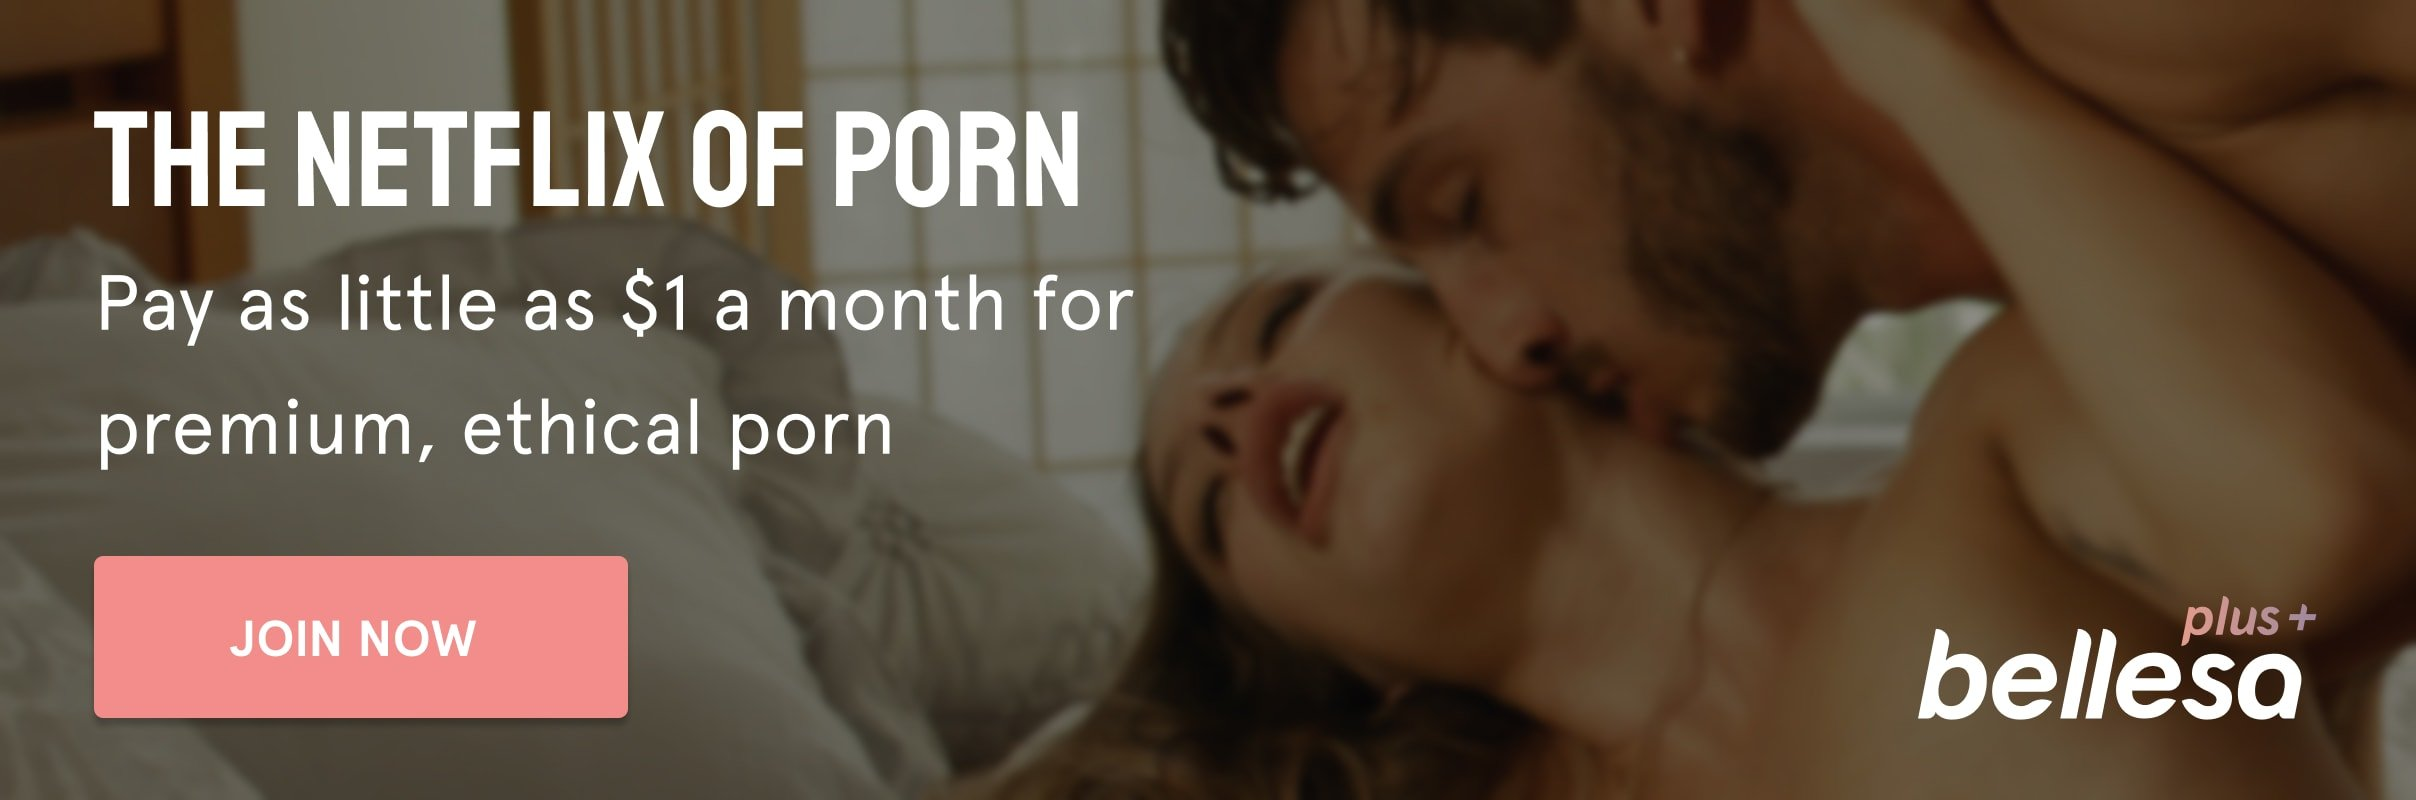 Netflix of Porn 2 - Join Now